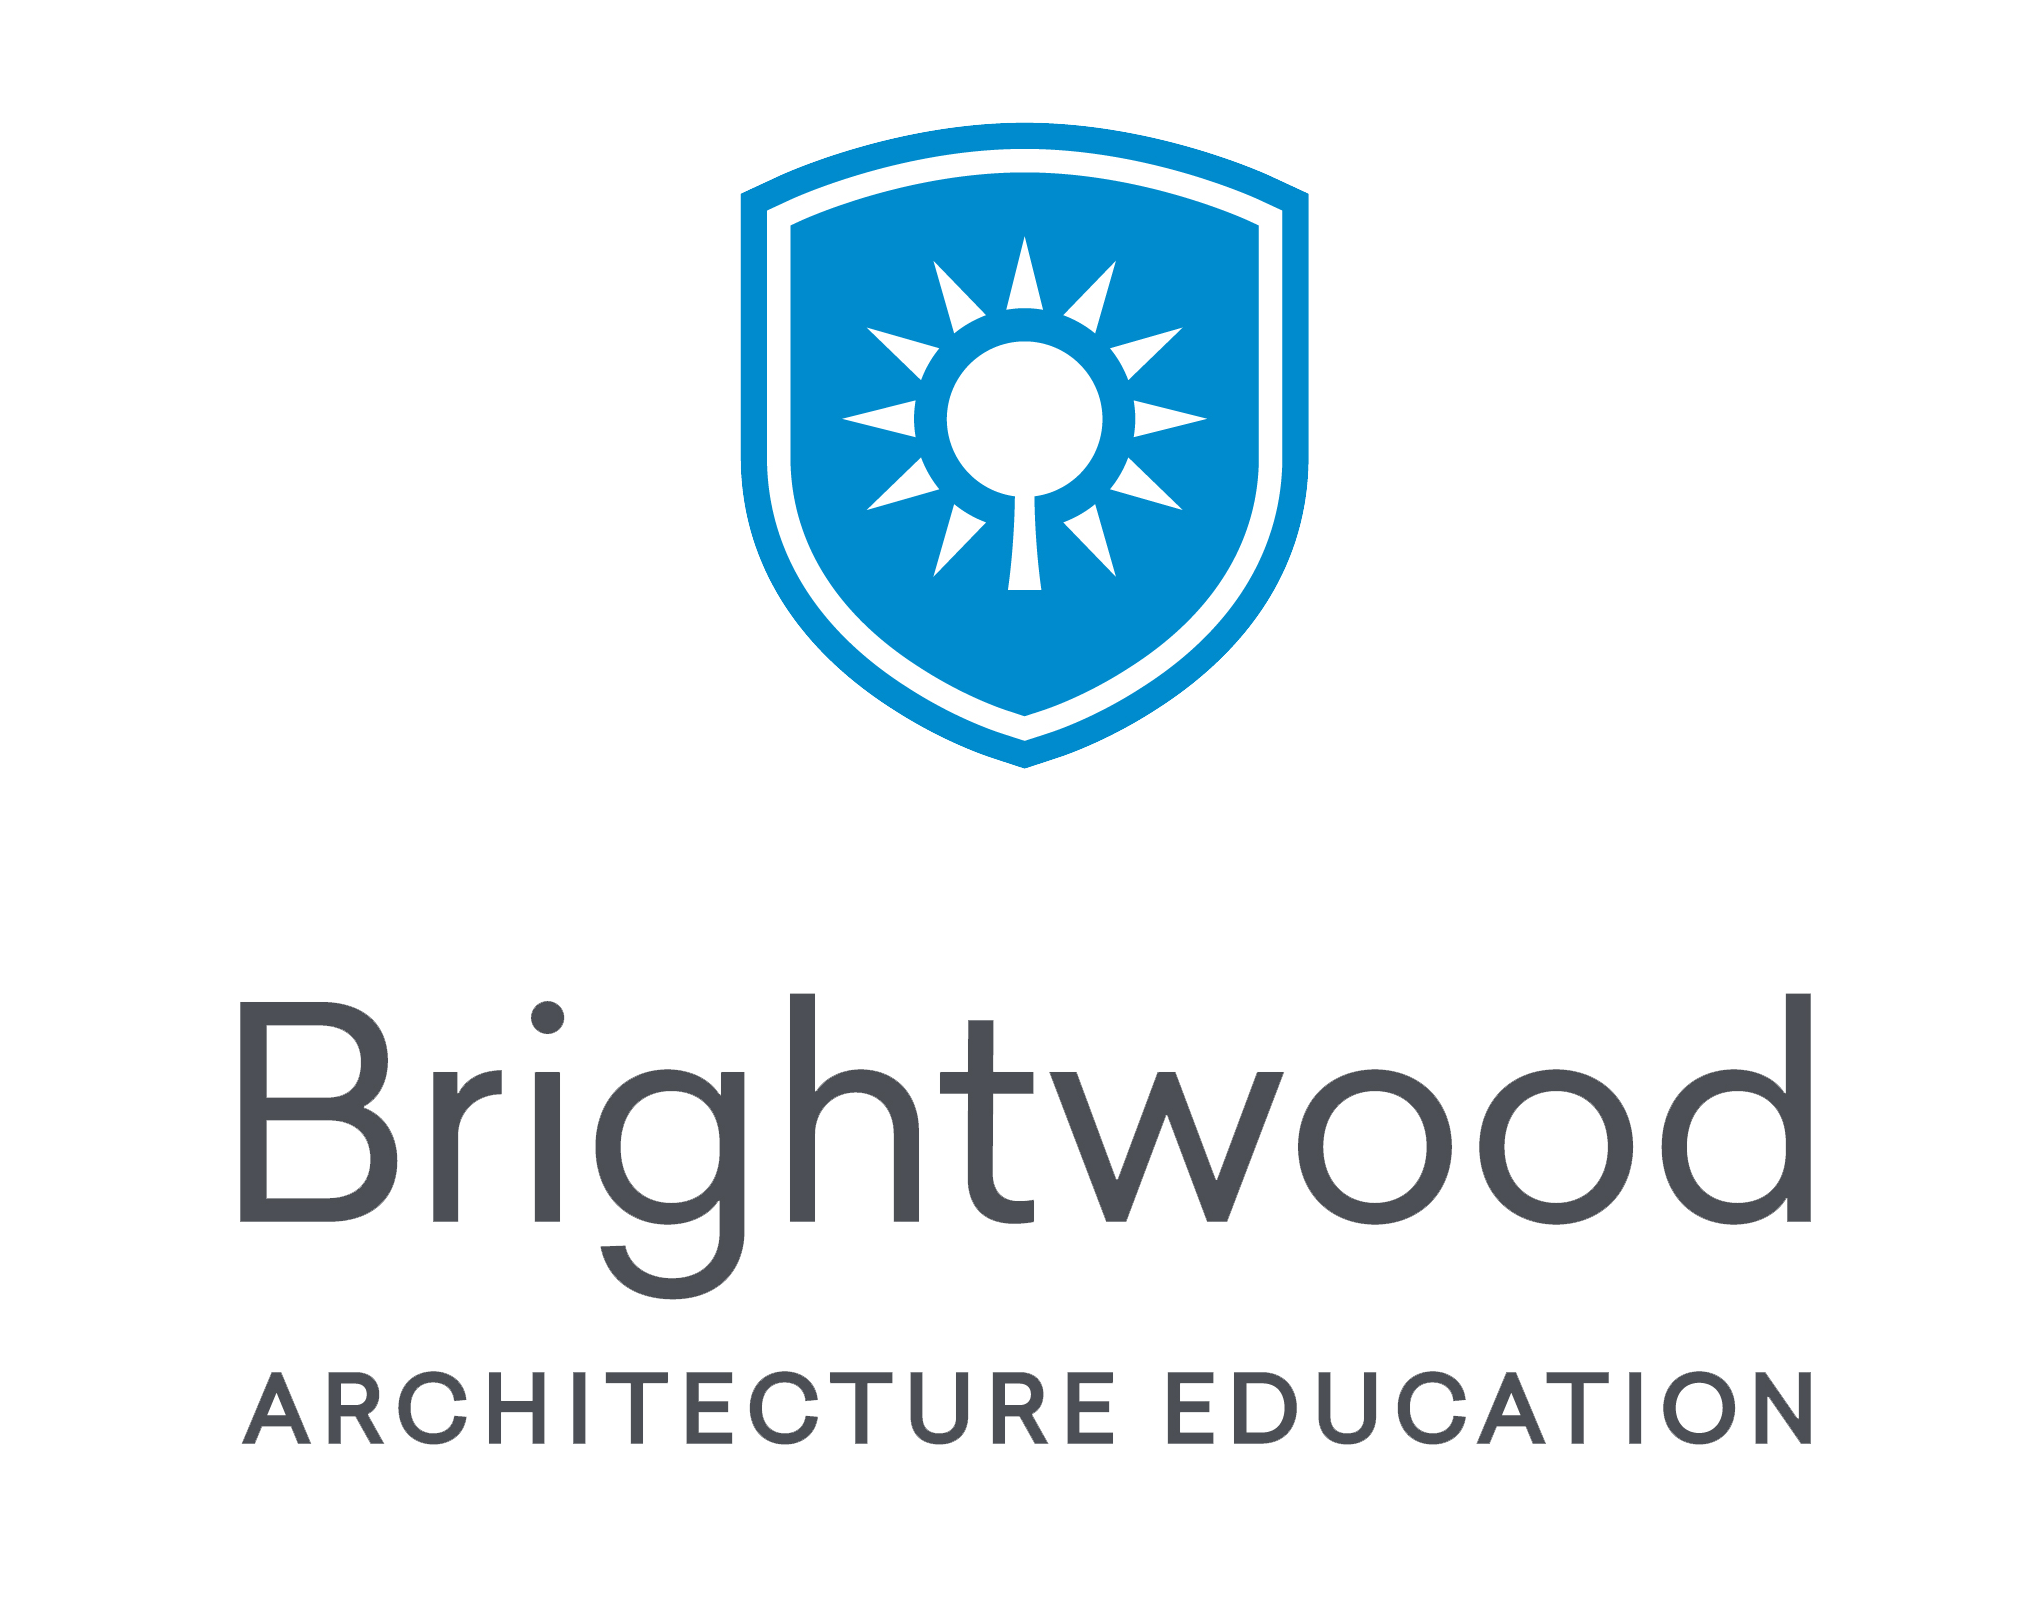 BRIGHTWOOD_Architecture-logo-trans.png